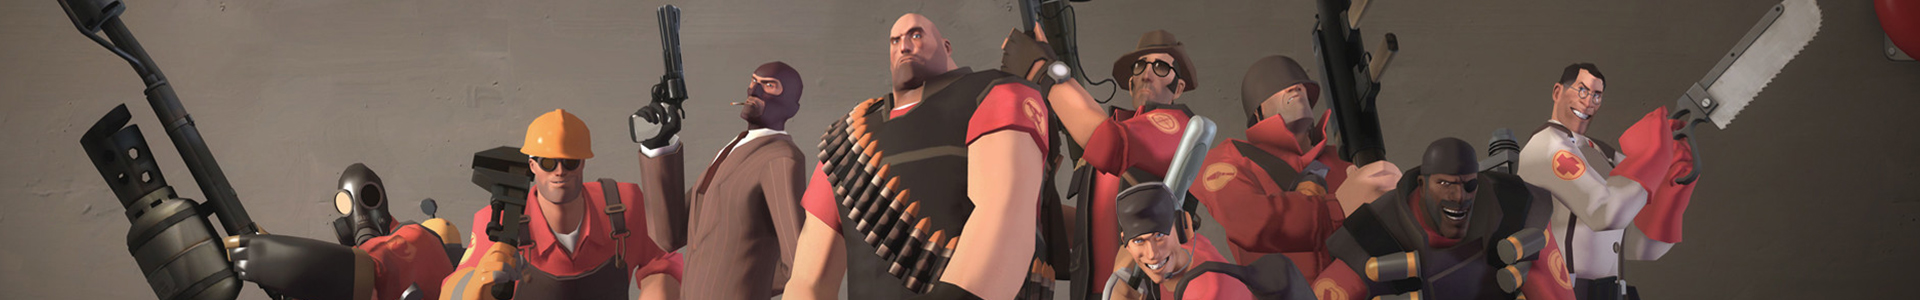 Banner media of Team Fortress 2 video game.